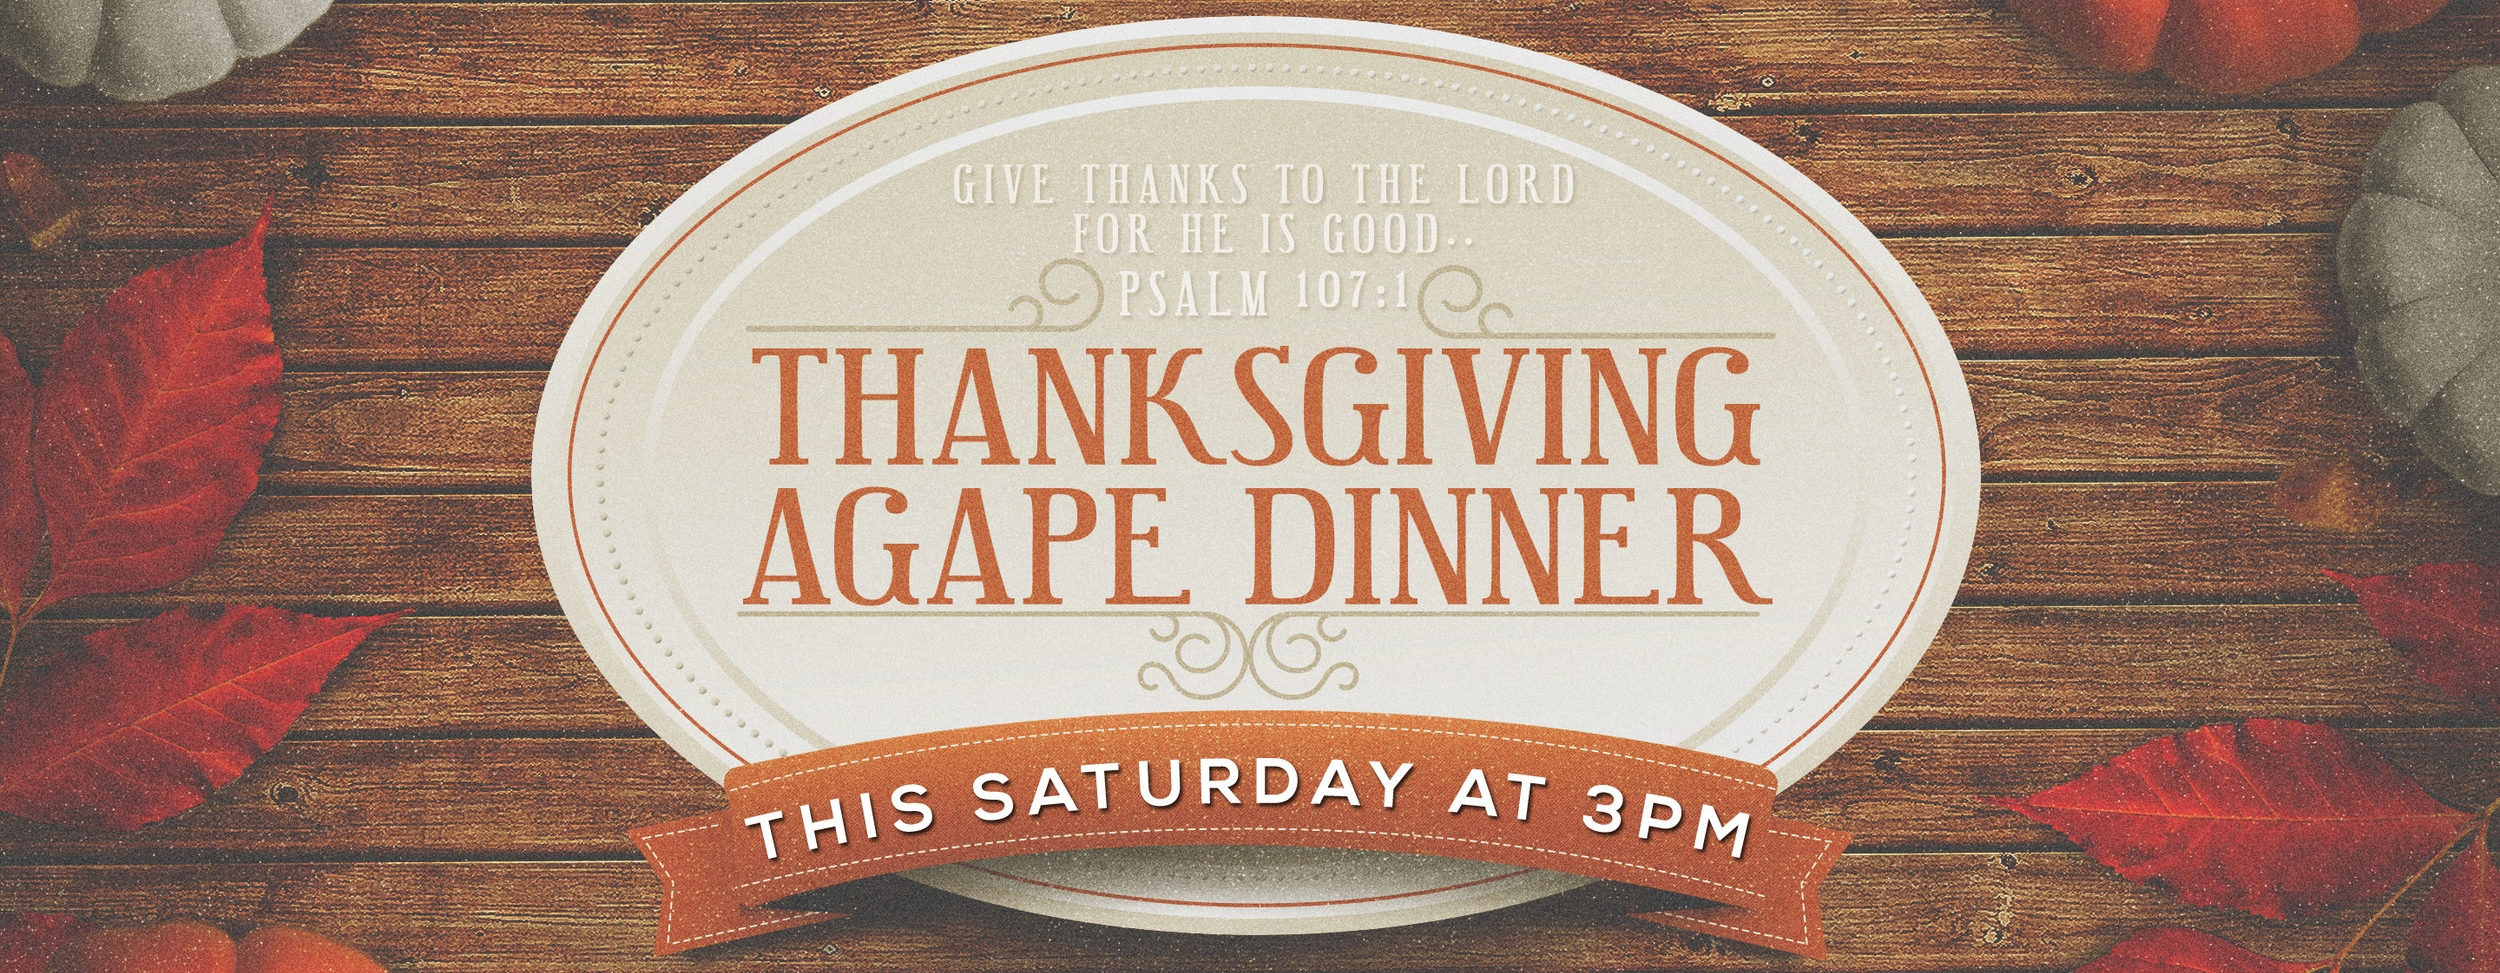 thanksgiving-agape-dinner.jpg